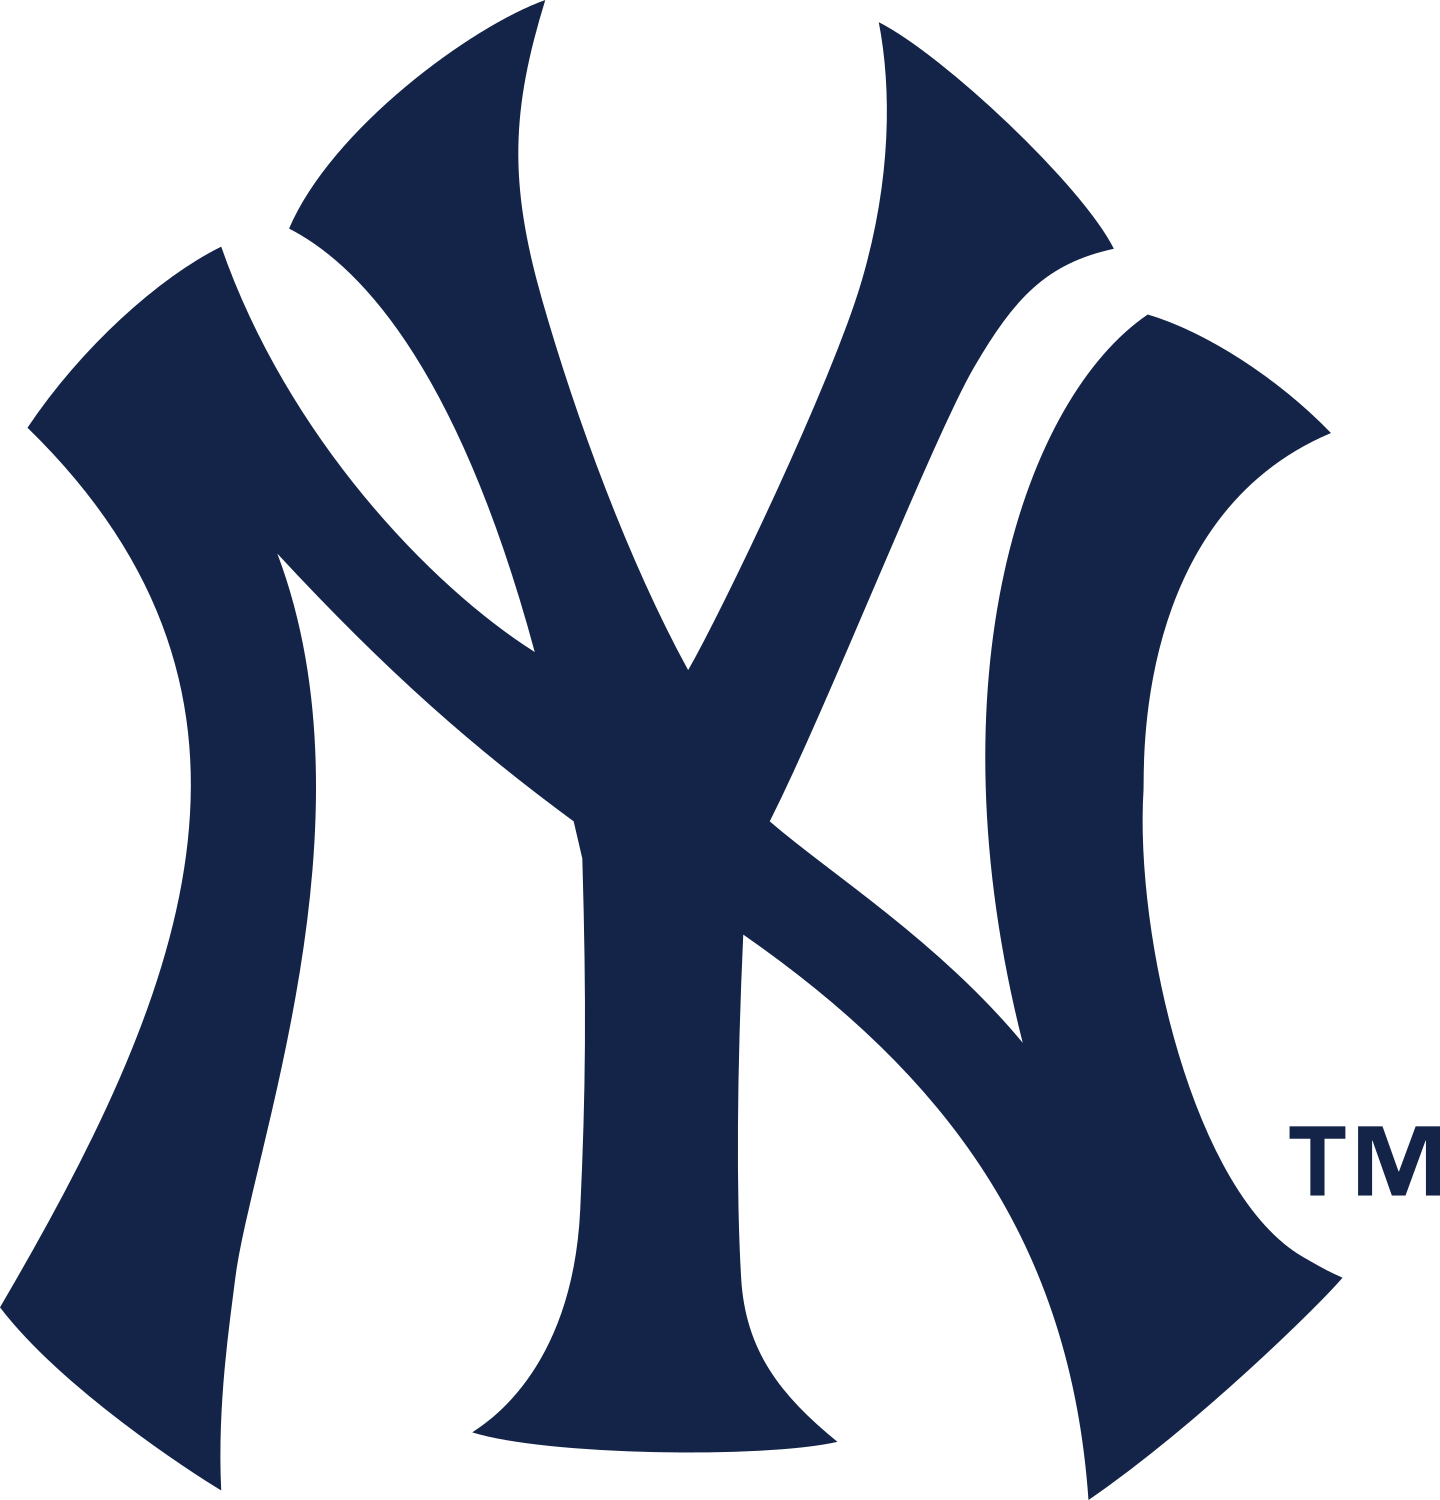 new york yankees logo 2 - New York Yankees Logo